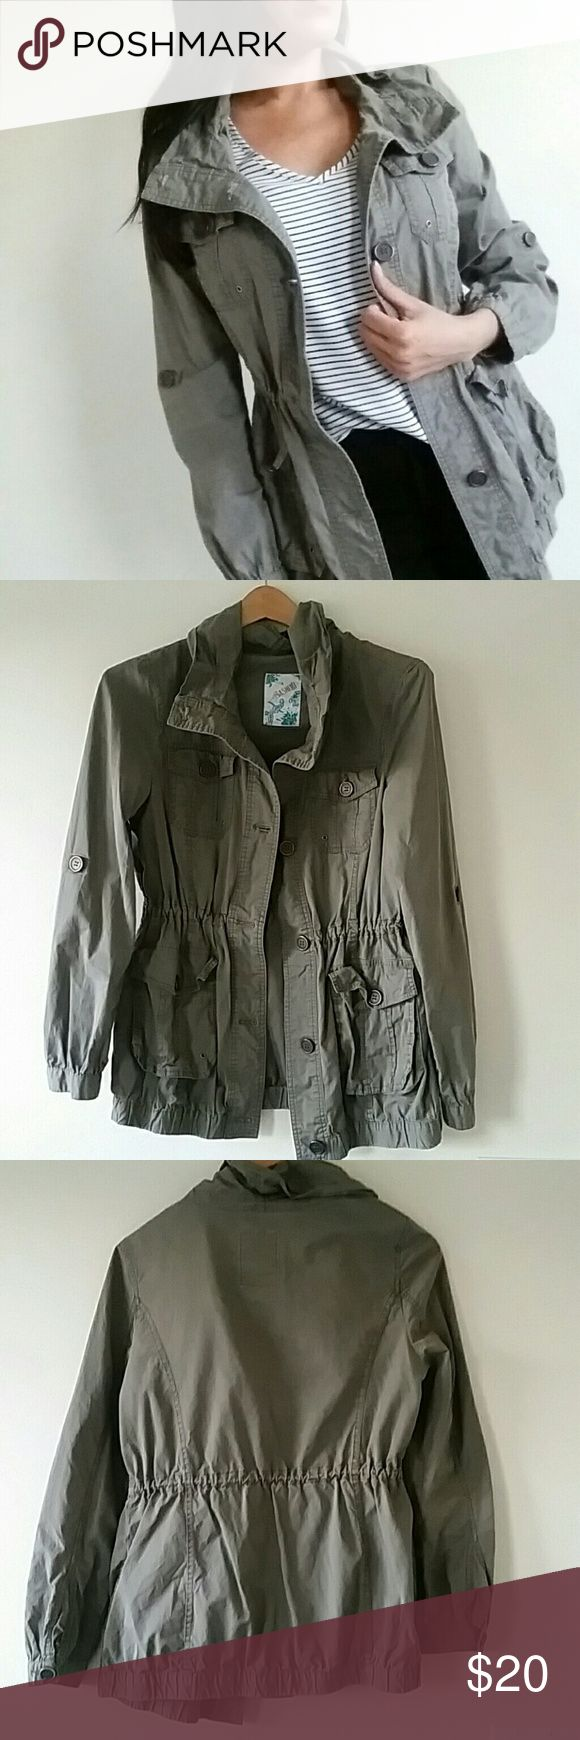 Sashimi Military Jacket Green Military Jacket by sashimi for Nordstrom. Featuring a button up design and inner drawstring waist. Great layering piece. In good condition. Sashimi Jackets & Coats Utility Jackets